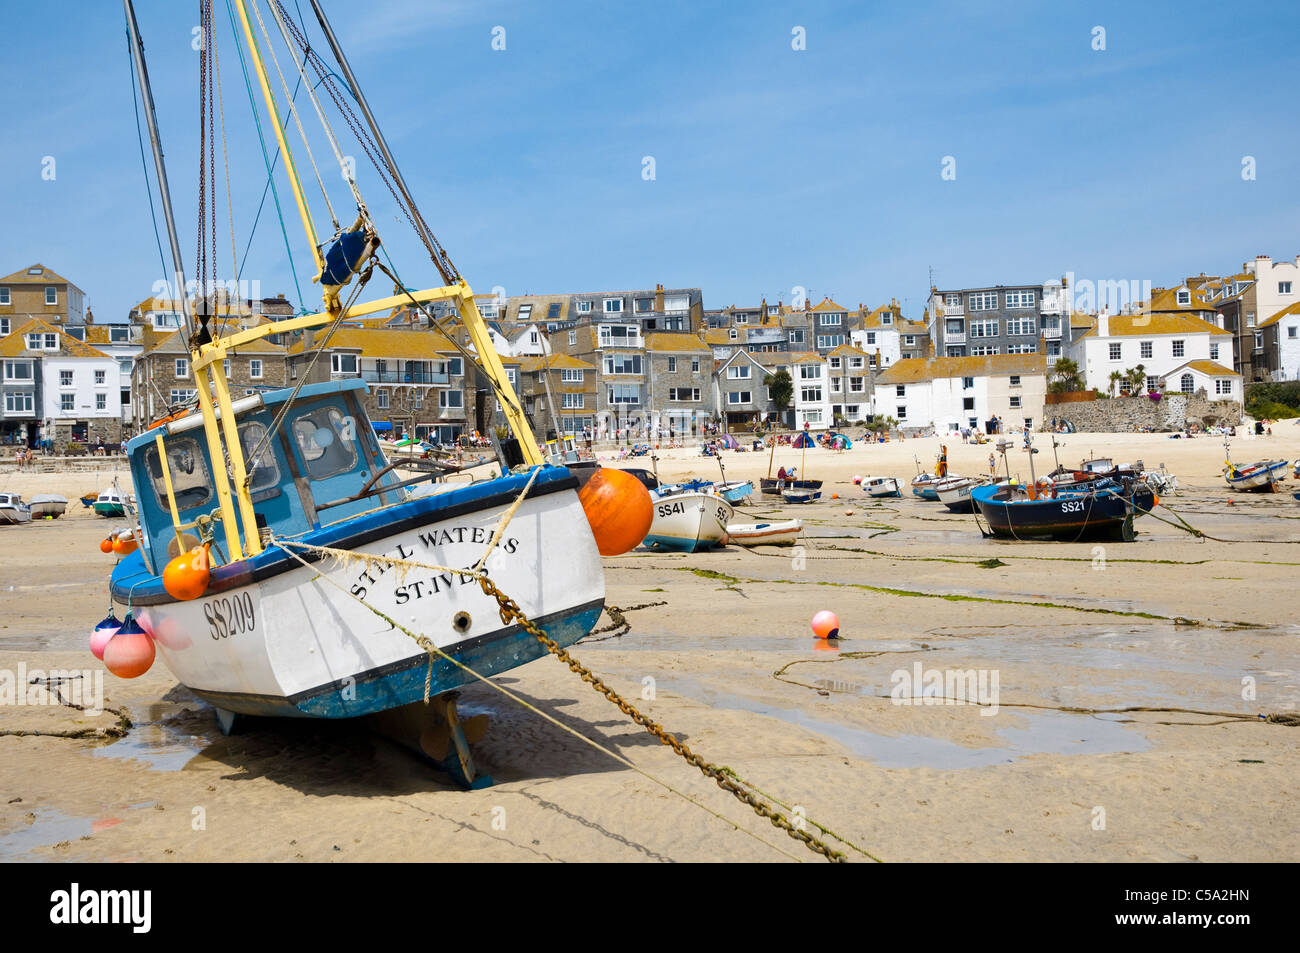 St Ives, Cornwall - the harbour at low tide.  Fishing boat in foreground named 'Still Waters St Ives'. UK Stock Photo